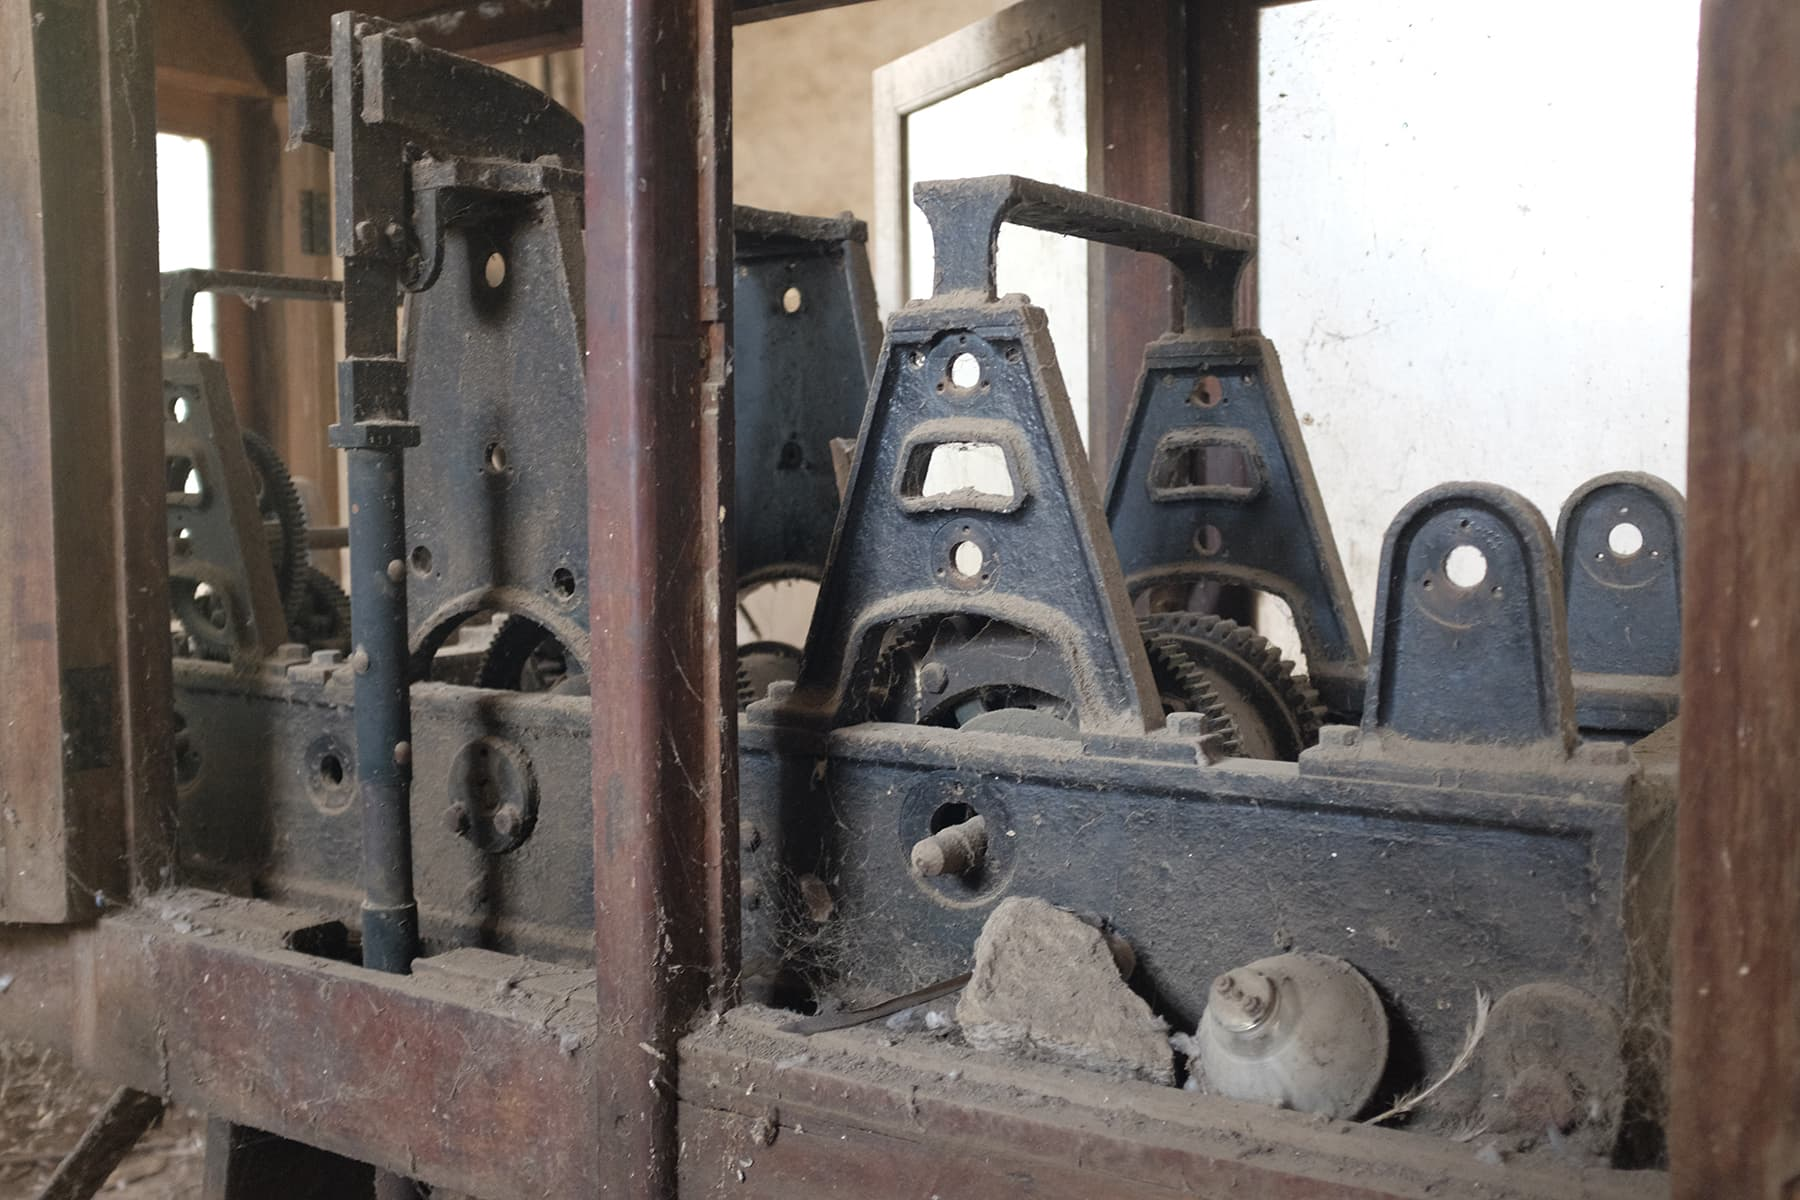 The machinery inside the clock tower compound.